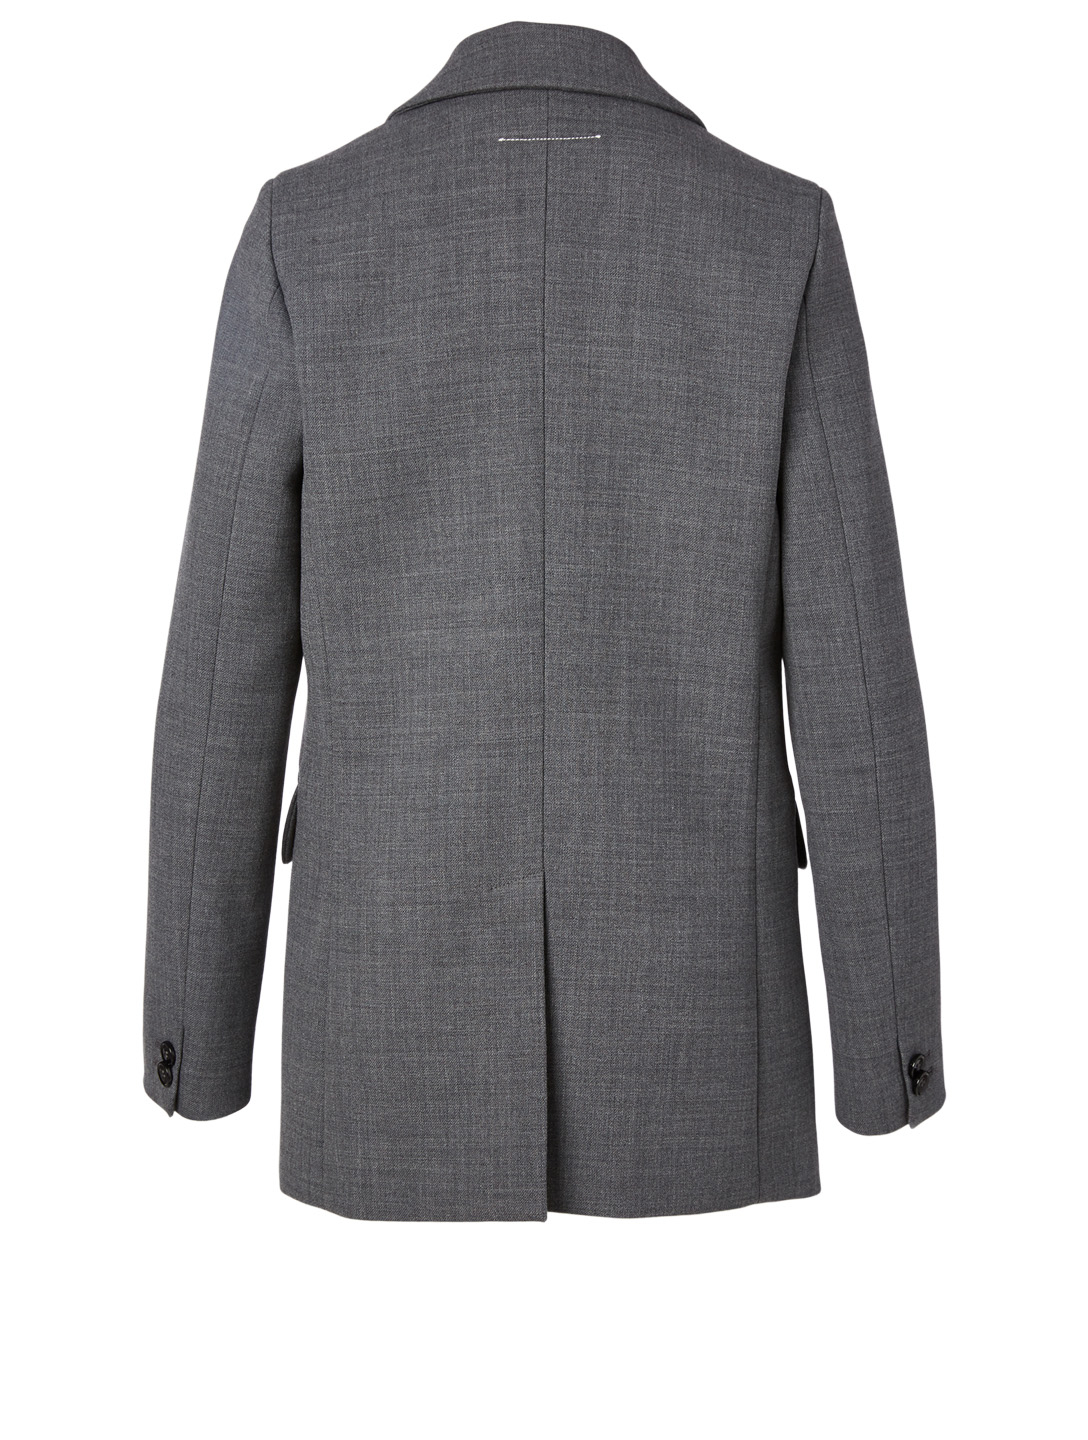 MM6 MAISON MARGIELA Wool-Blend Blazer Women's Grey